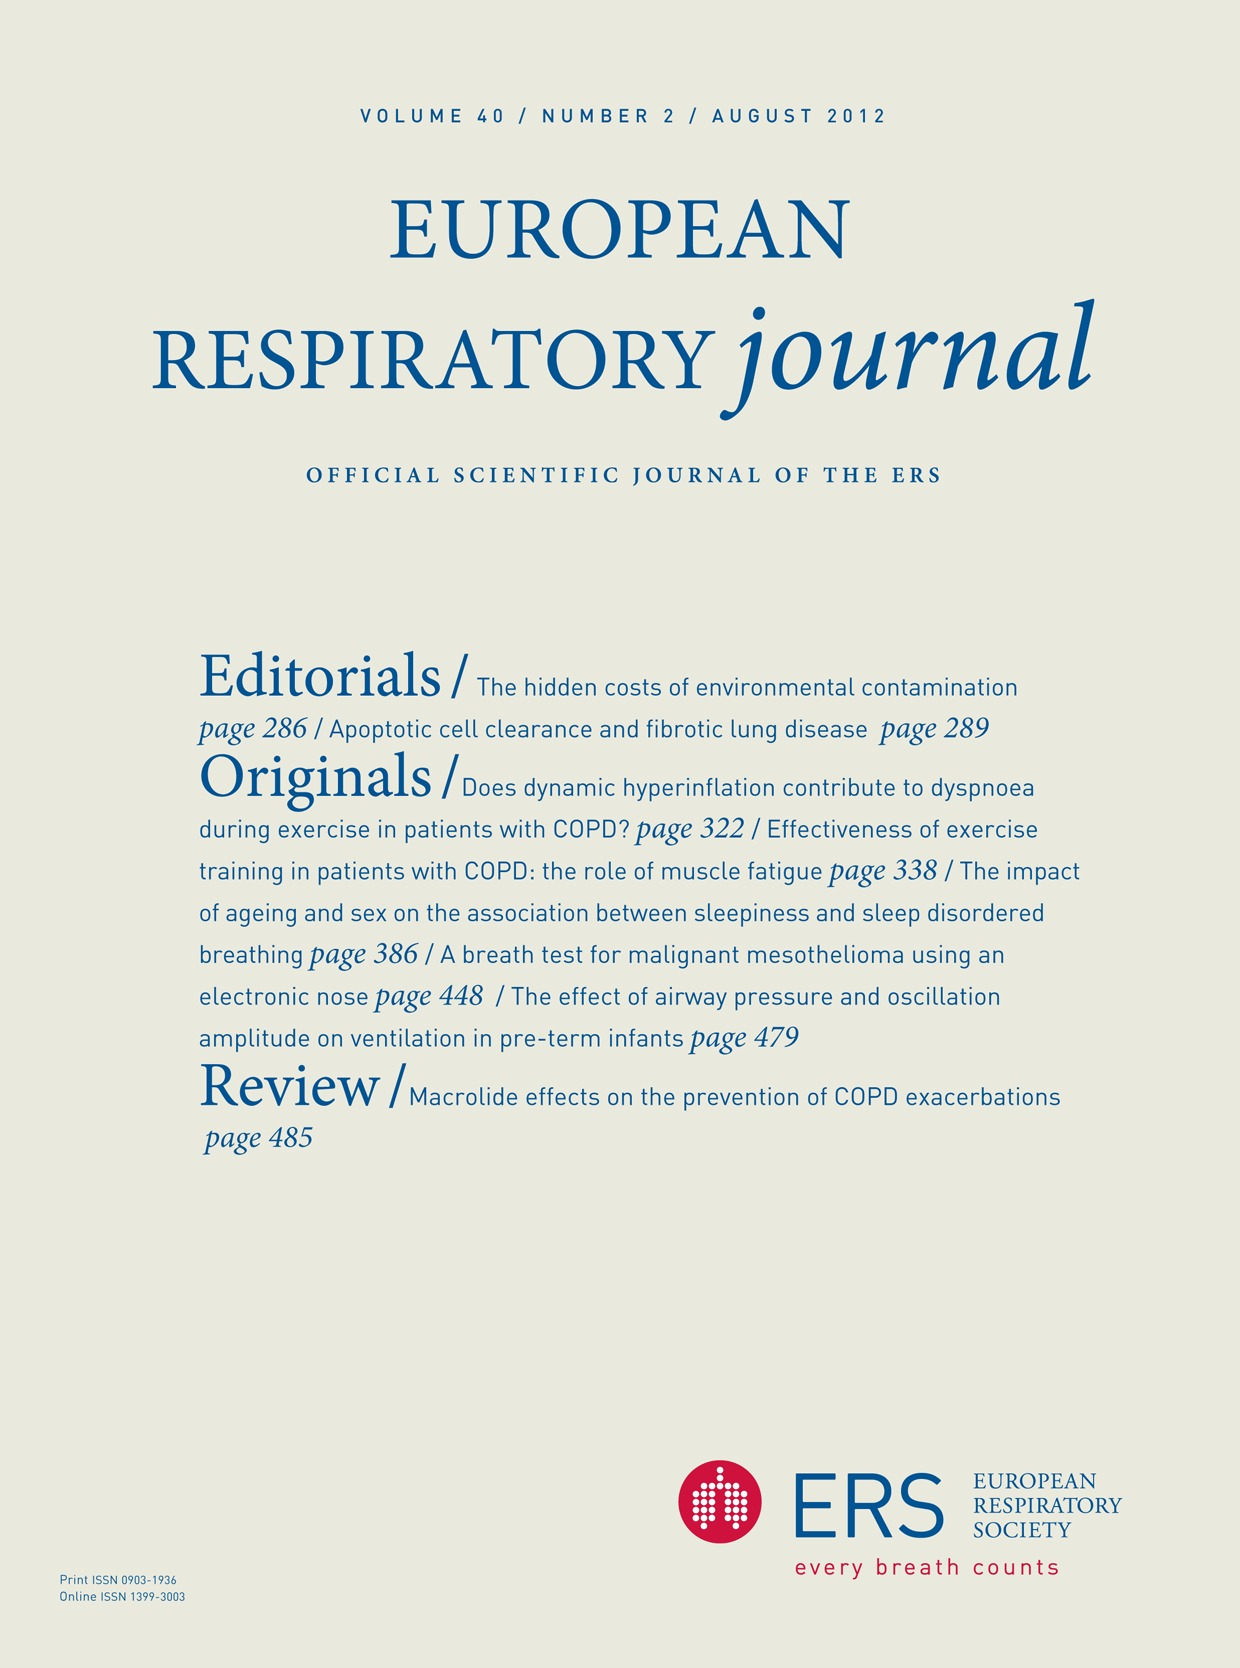 Tough at the top: must end-expiratory lung volume make way